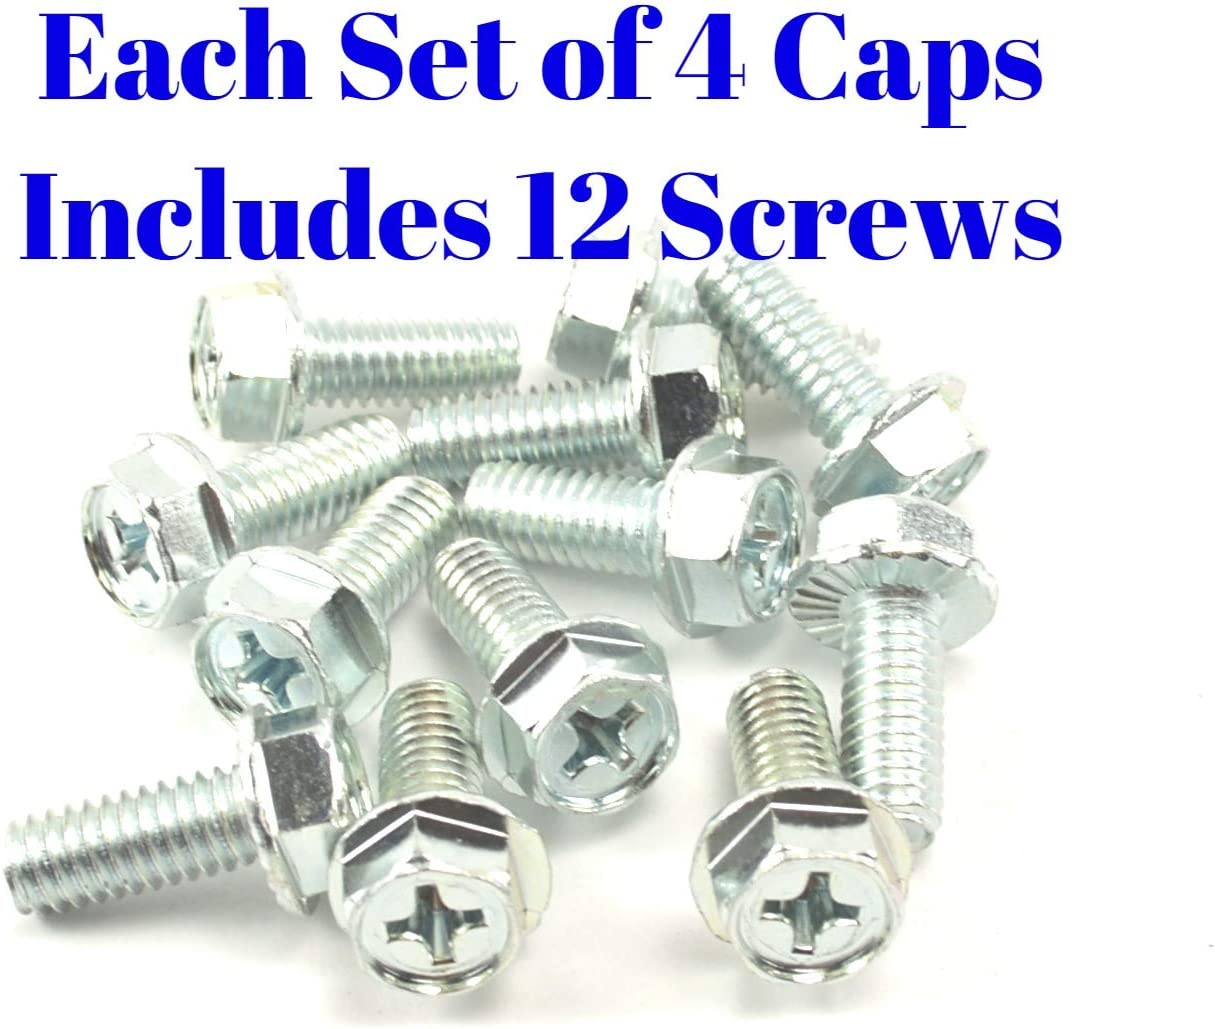 BB Auto Set of 4 New 4x4 6 Lug 15 inch 15x8 Rally Wheel Center caps Replacement for Chevrolet Chevy GMC Truck 2 Open Front Caps 2 Rear Closed caps